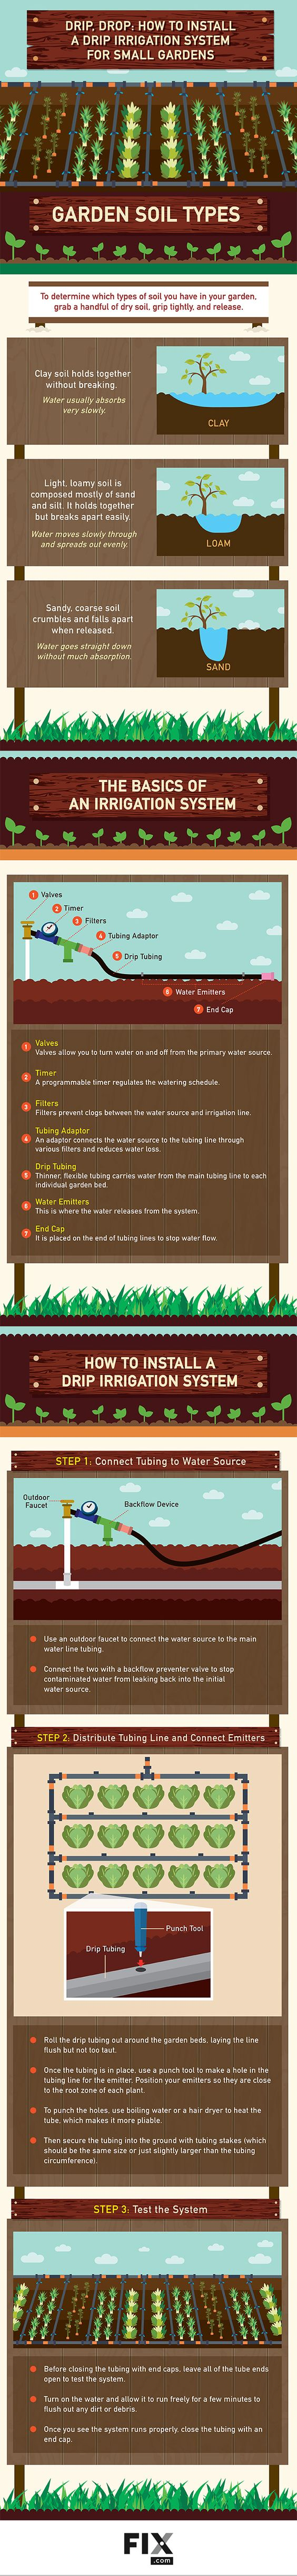 Drip, Drop: How to Install a Drip Irrigation System for Small Gardens #Infographic #Gardening #HowTo